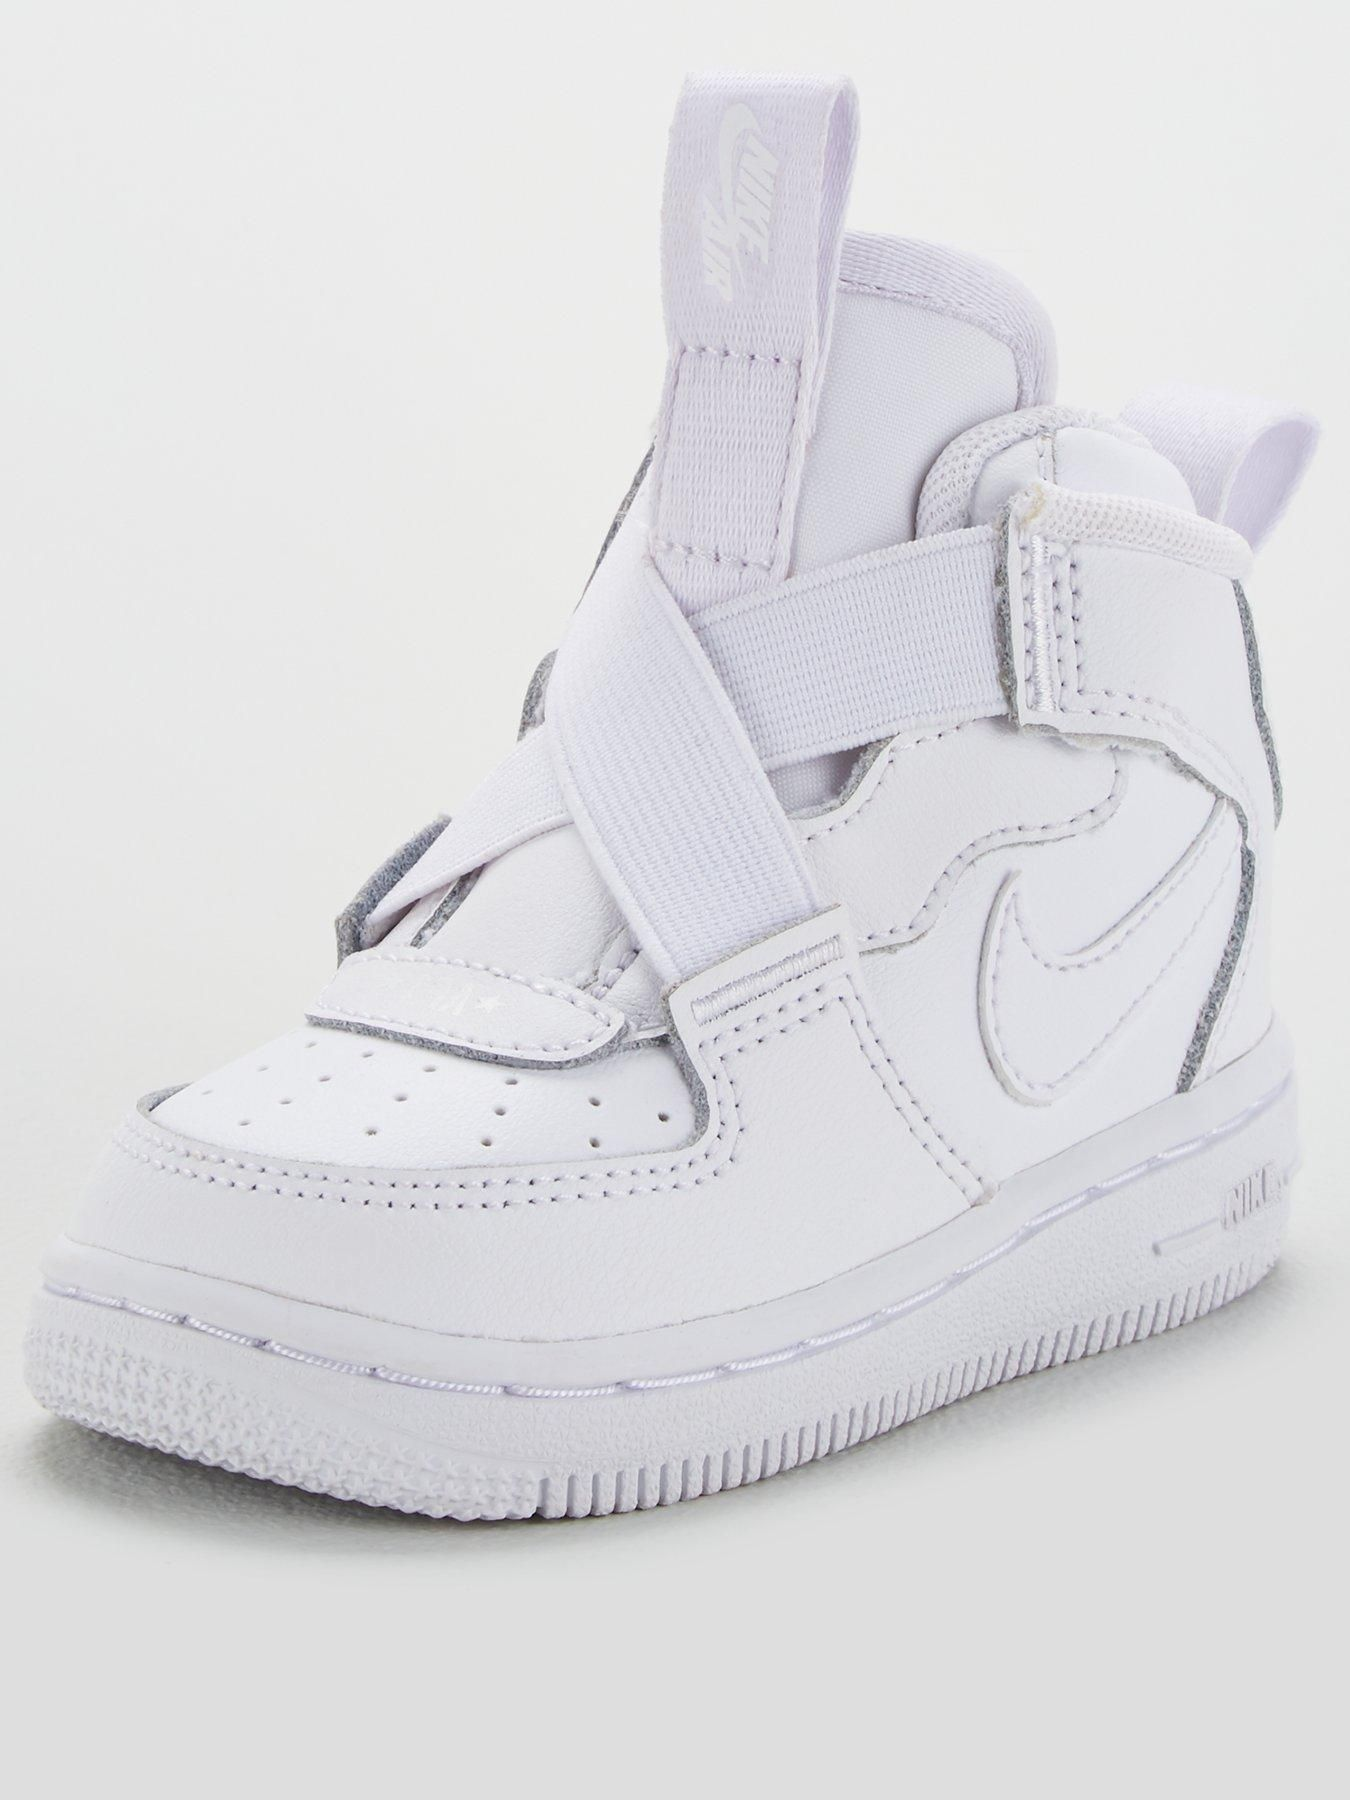 Nike Force 1 Highness Toddler Trainer in WhiteWhite | Nike